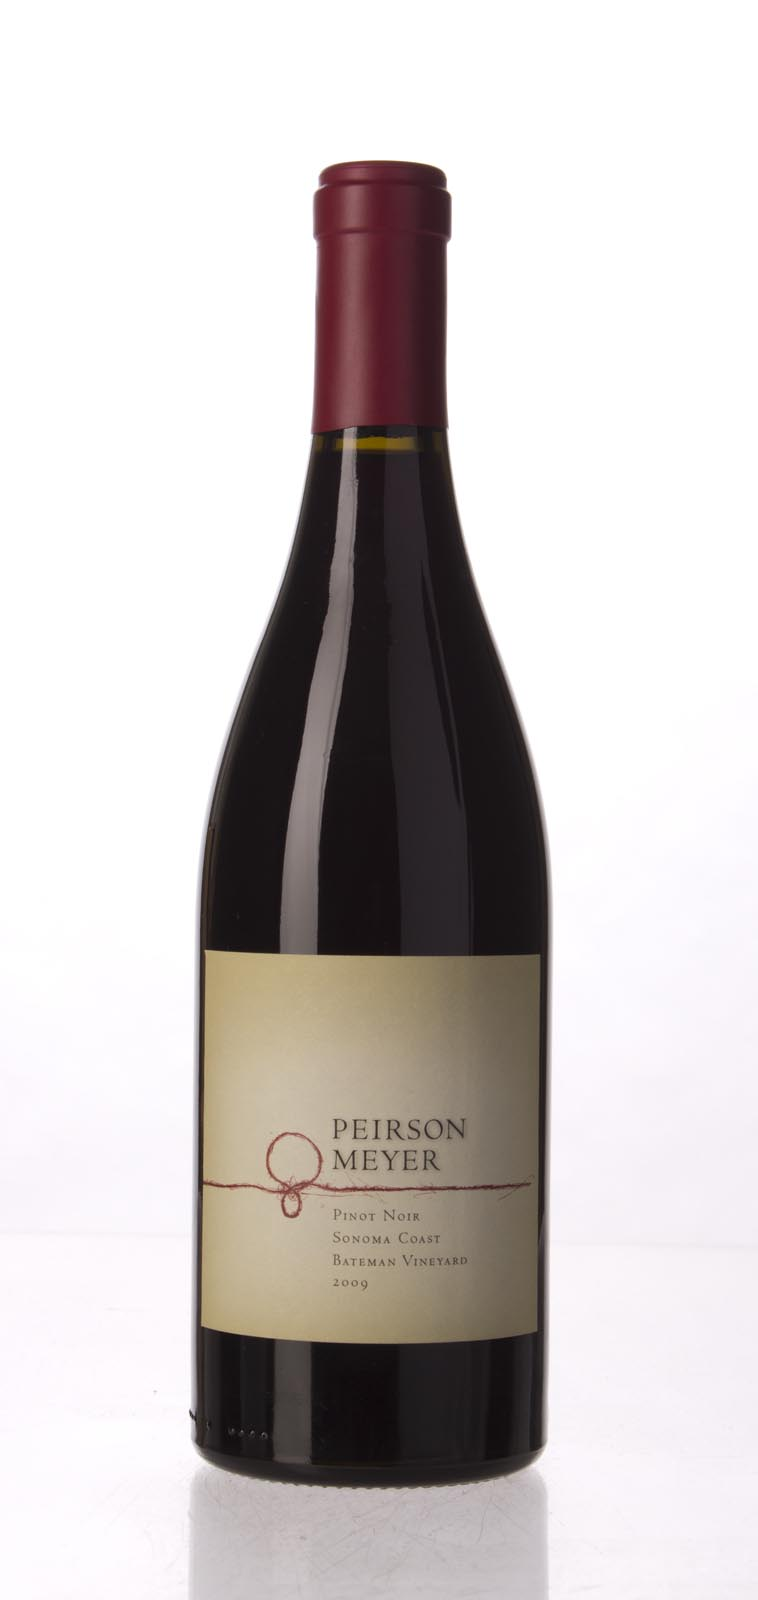 Peirson Meyer Pinot Noir Sonoma Bateman Vineyard 2009, 750mL () from The BPW - Merchants of rare and fine wines.